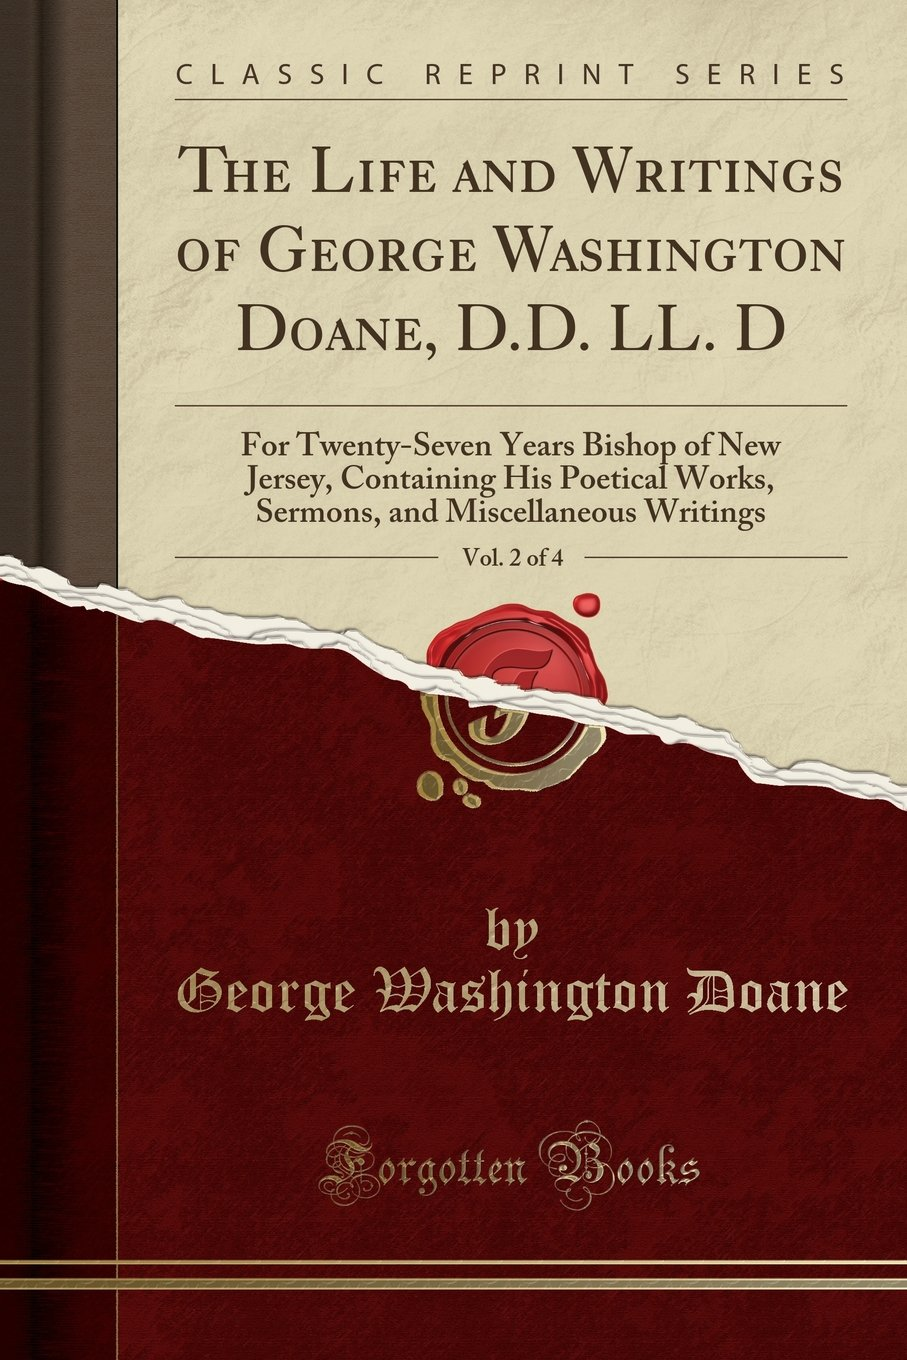 The Life and Writings of George Washington Doane, D.D. LL. D, Vol. 2 of 4: For Twenty-Seven Years Bishop of New Jersey, Containing His Poetical Works, ... and Miscellaneous Writings (Classic Reprint) pdf